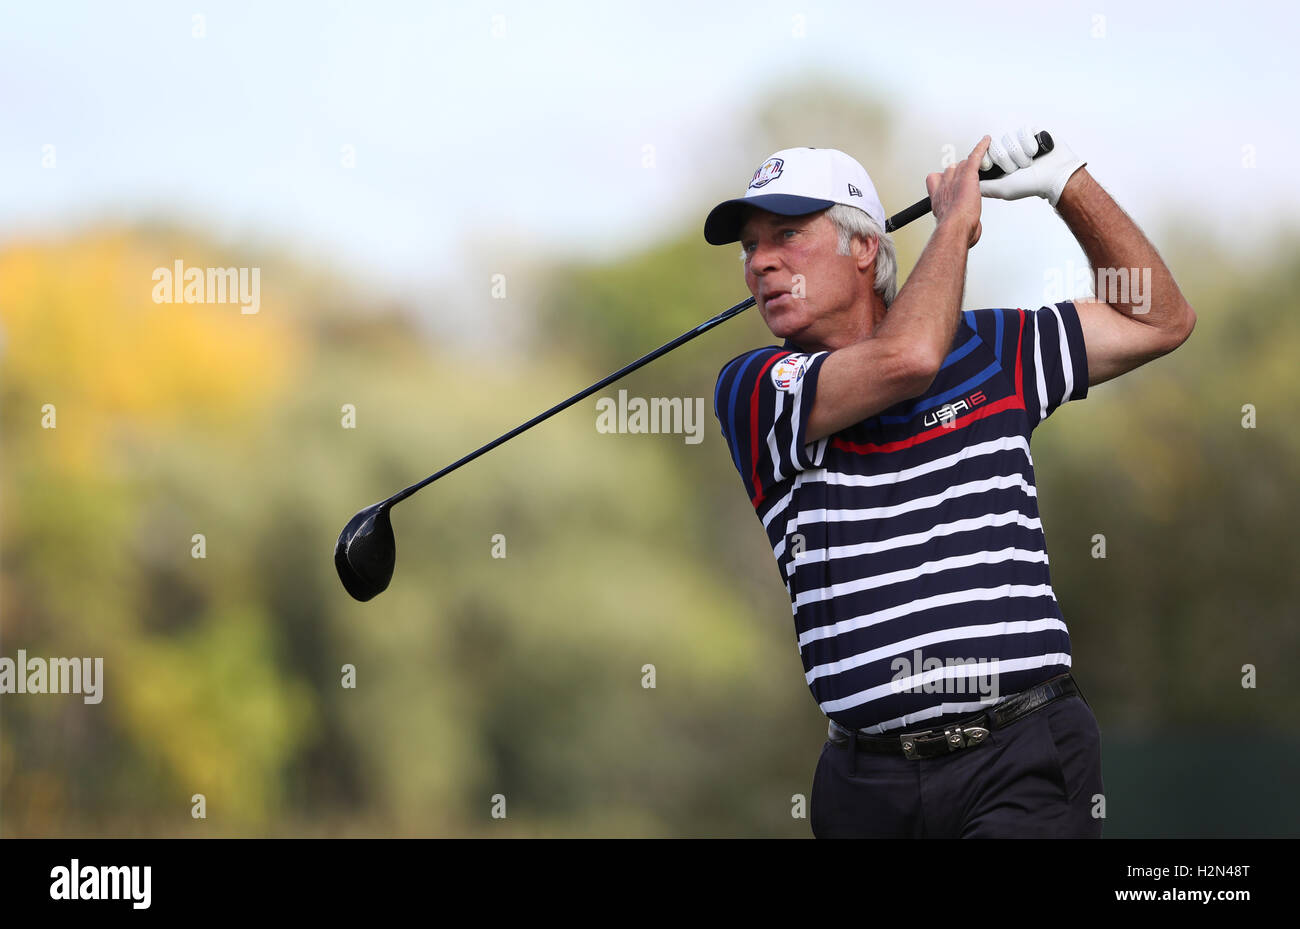 USA's Ben Crenshaw during the captain's challenge ahead of the 41st Ryder Cup at Hazeltine National Golf - Stock Image